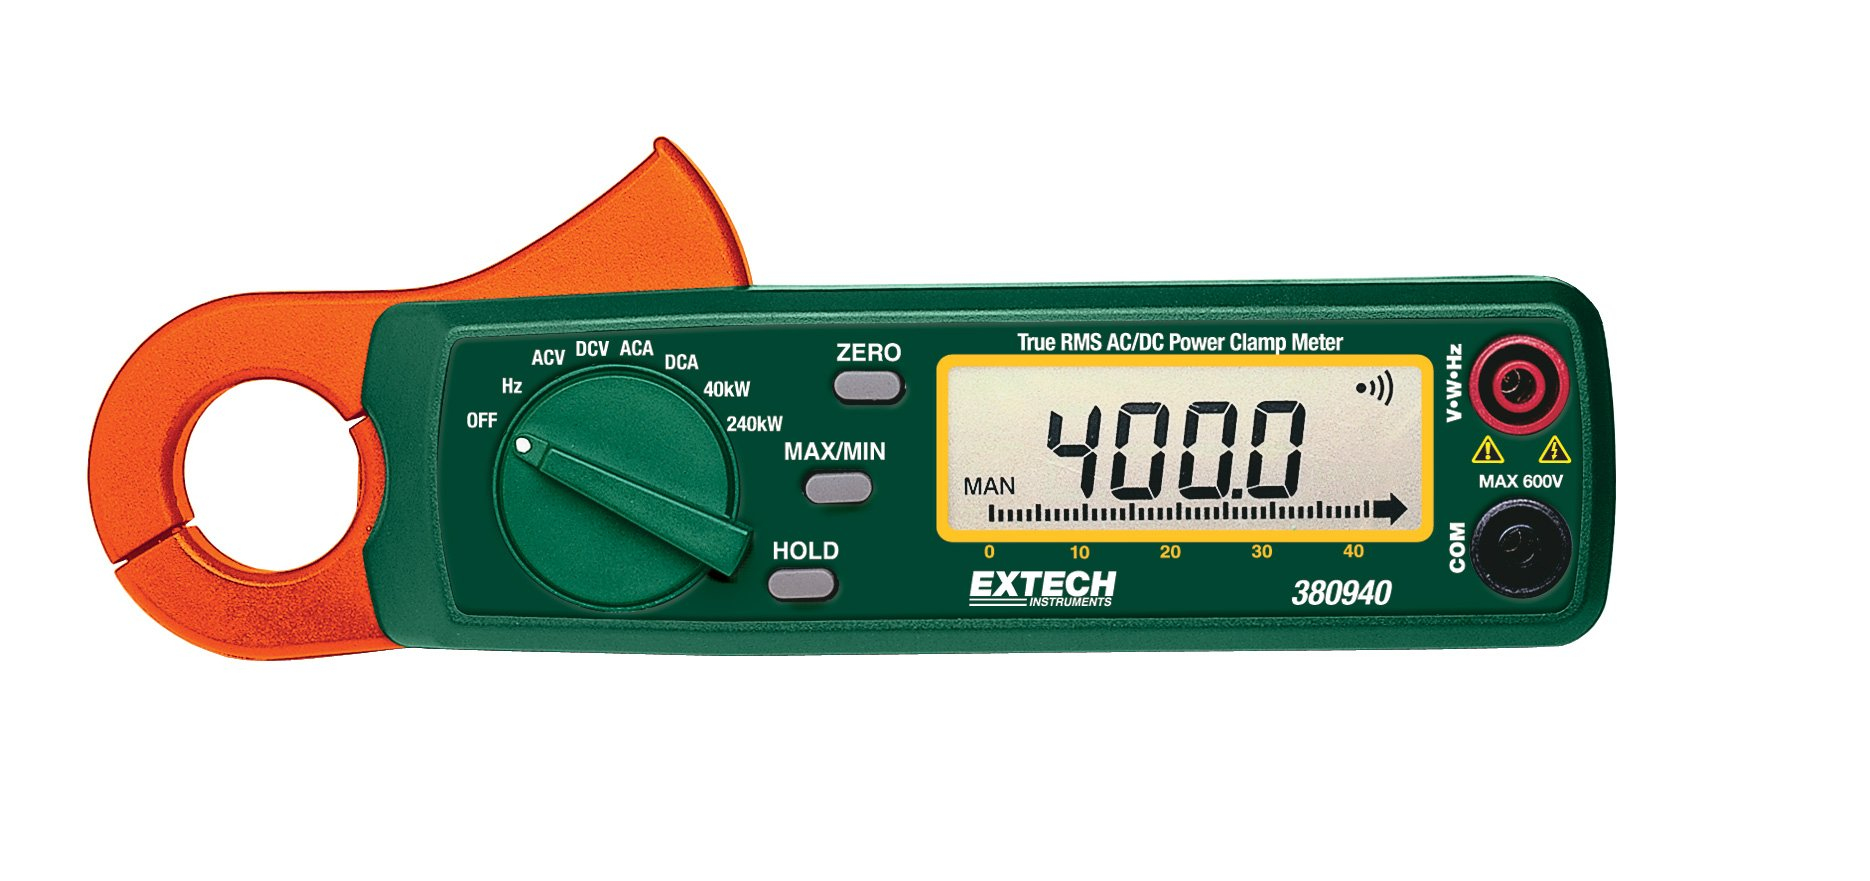 Extech 380940 True RMS 400A AC/DC Power Clamp Meter